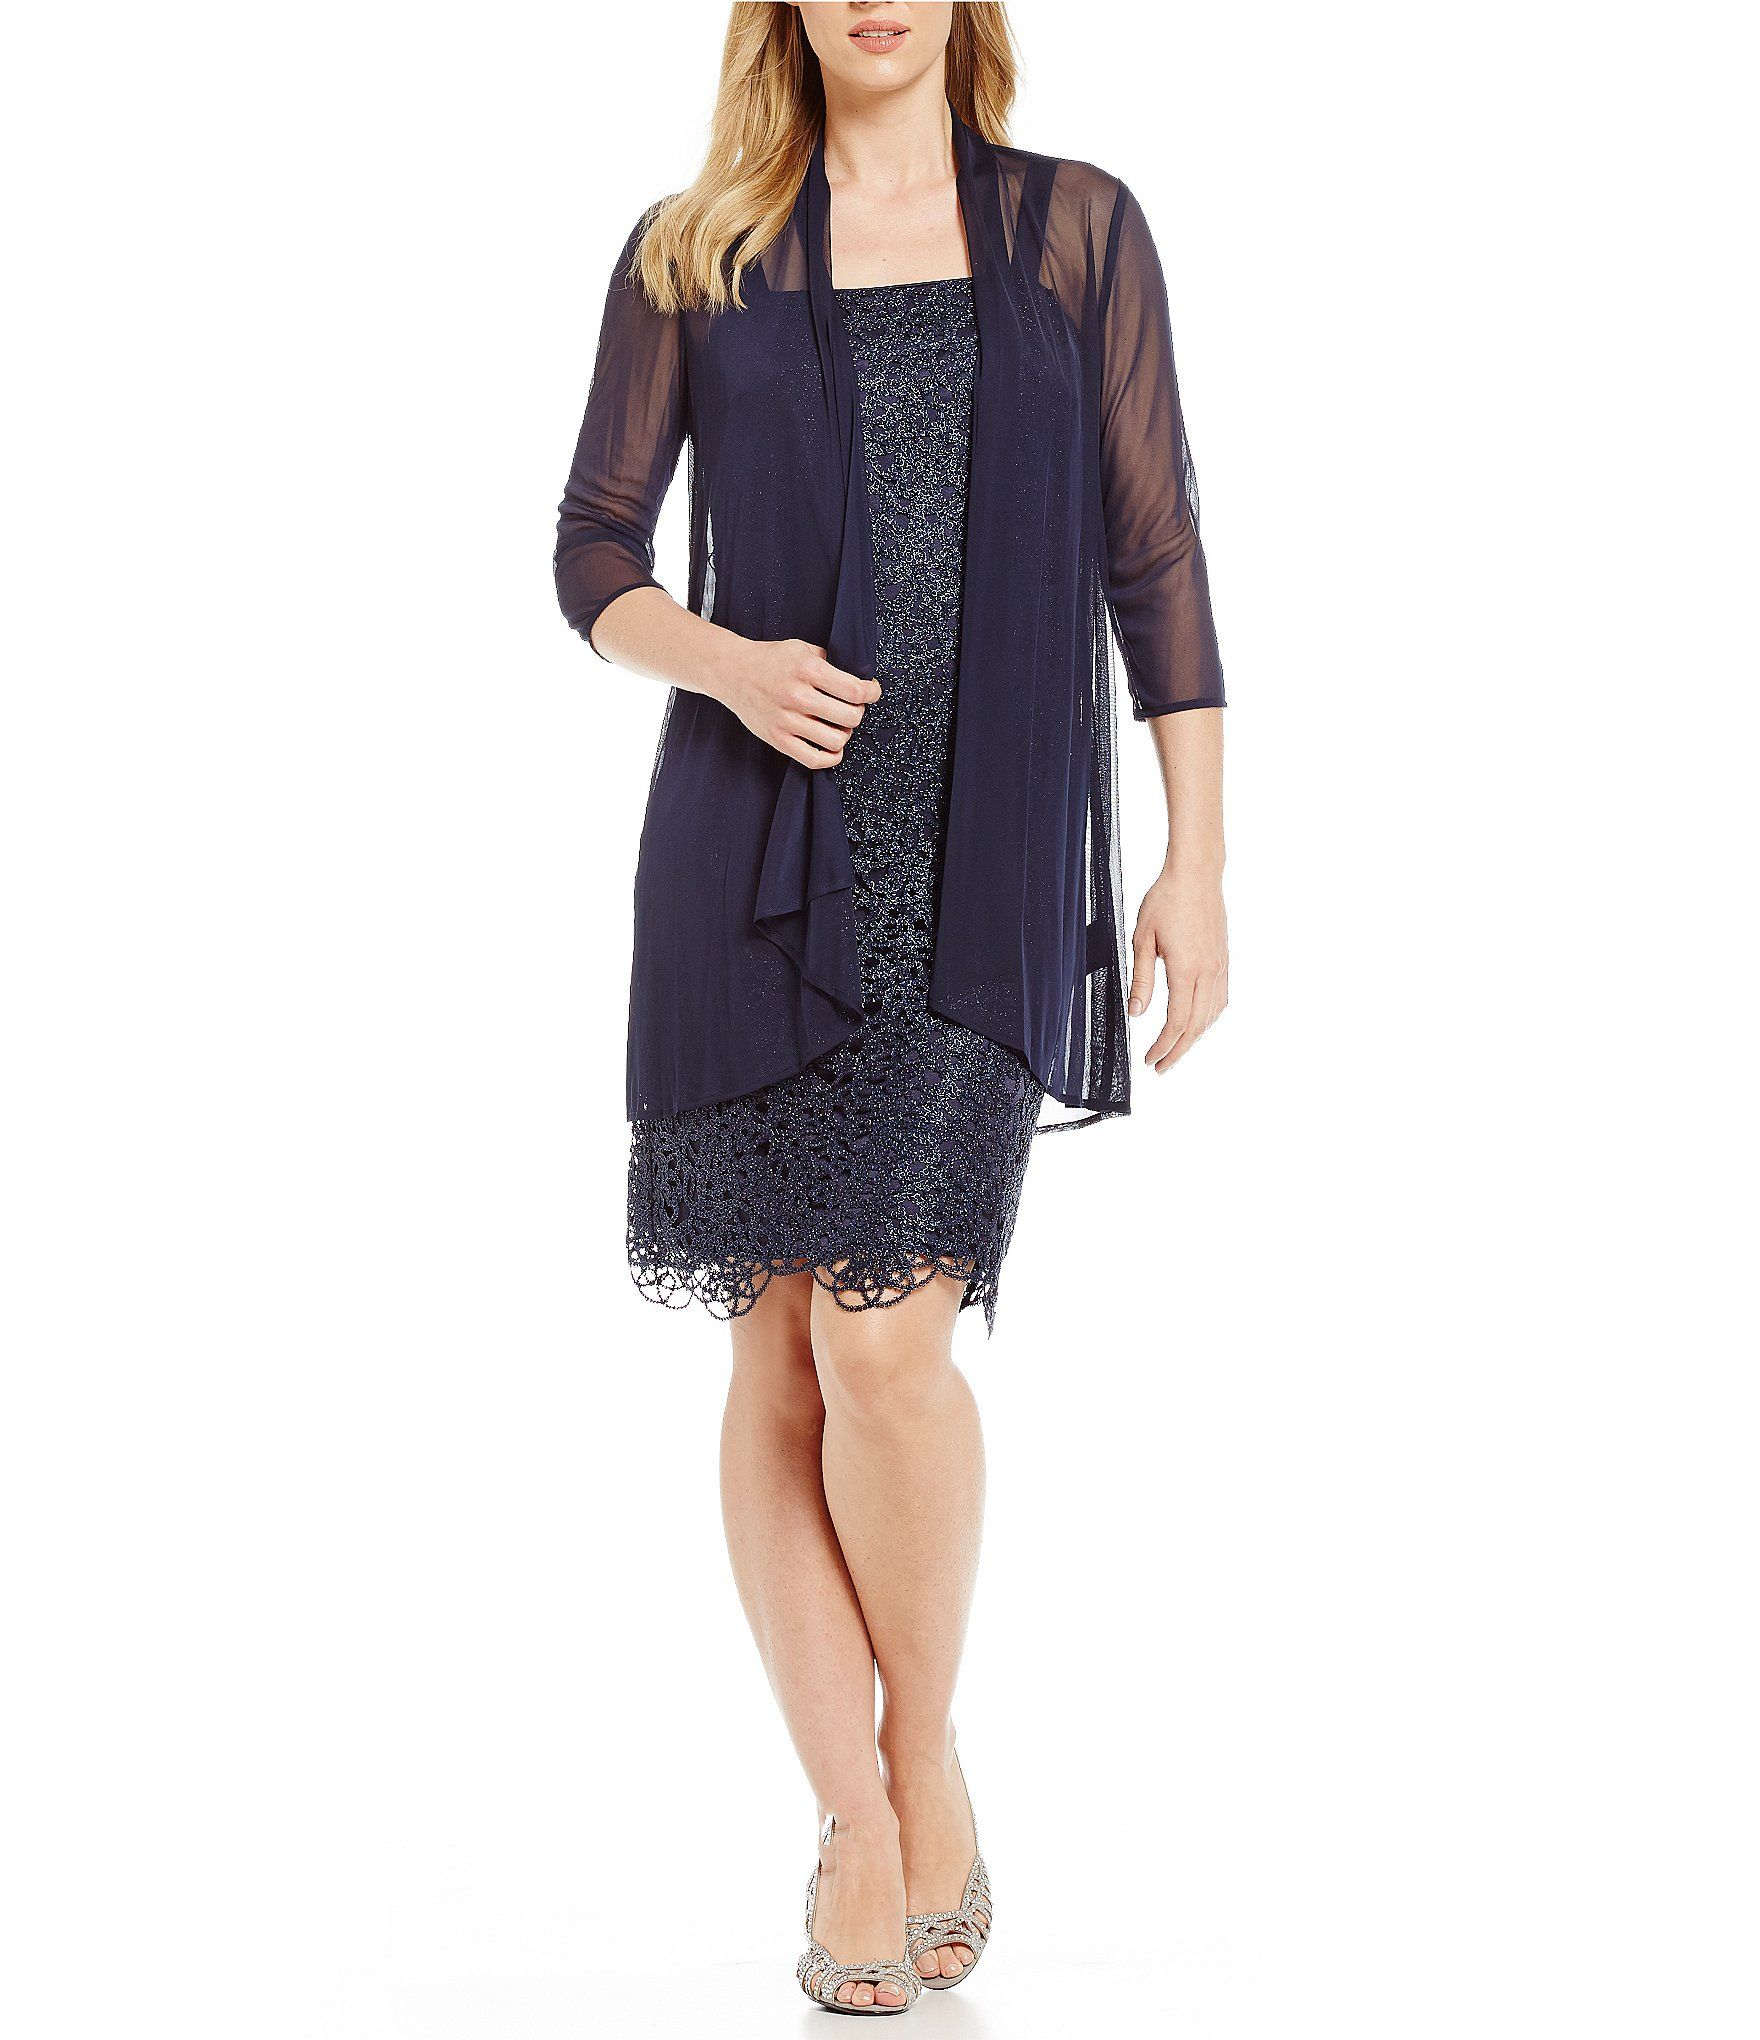 337c3cdb458 R   M Richards Petite Metallic Embroidered Lace Jacket Dress